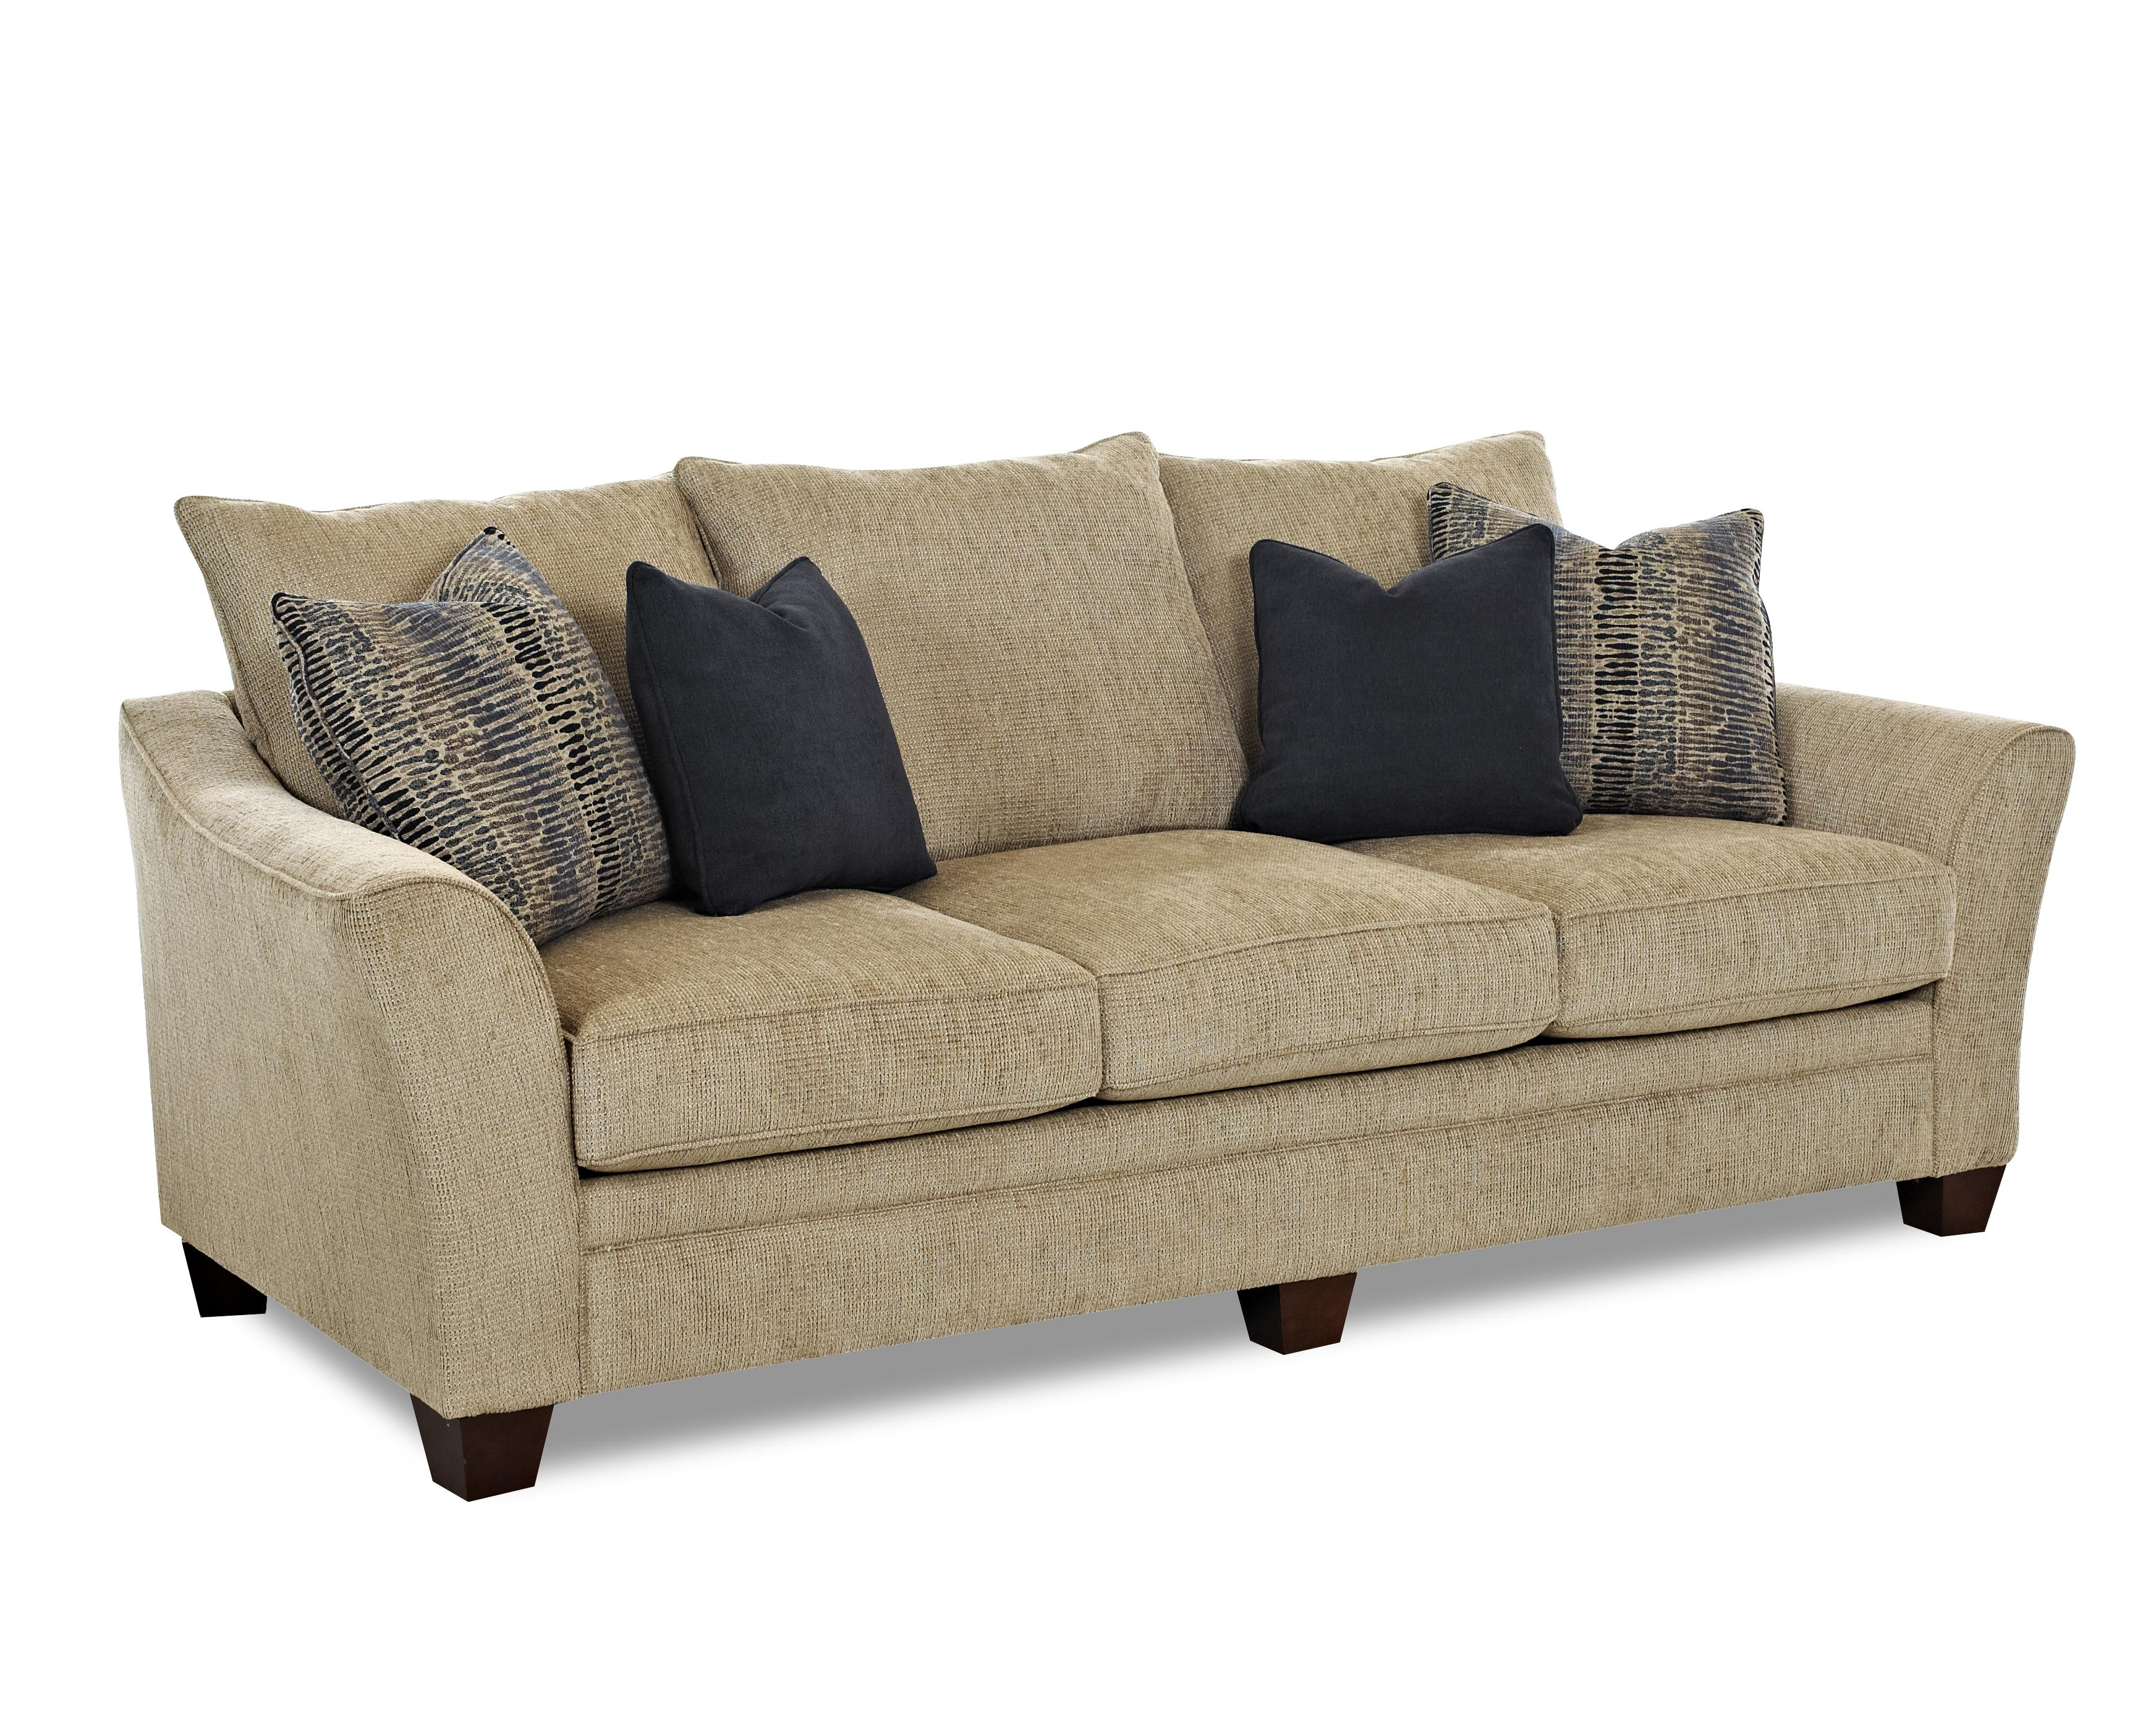 klaussner sofa and loveseat set bed cheap canada posen contemporary with block feet olinde